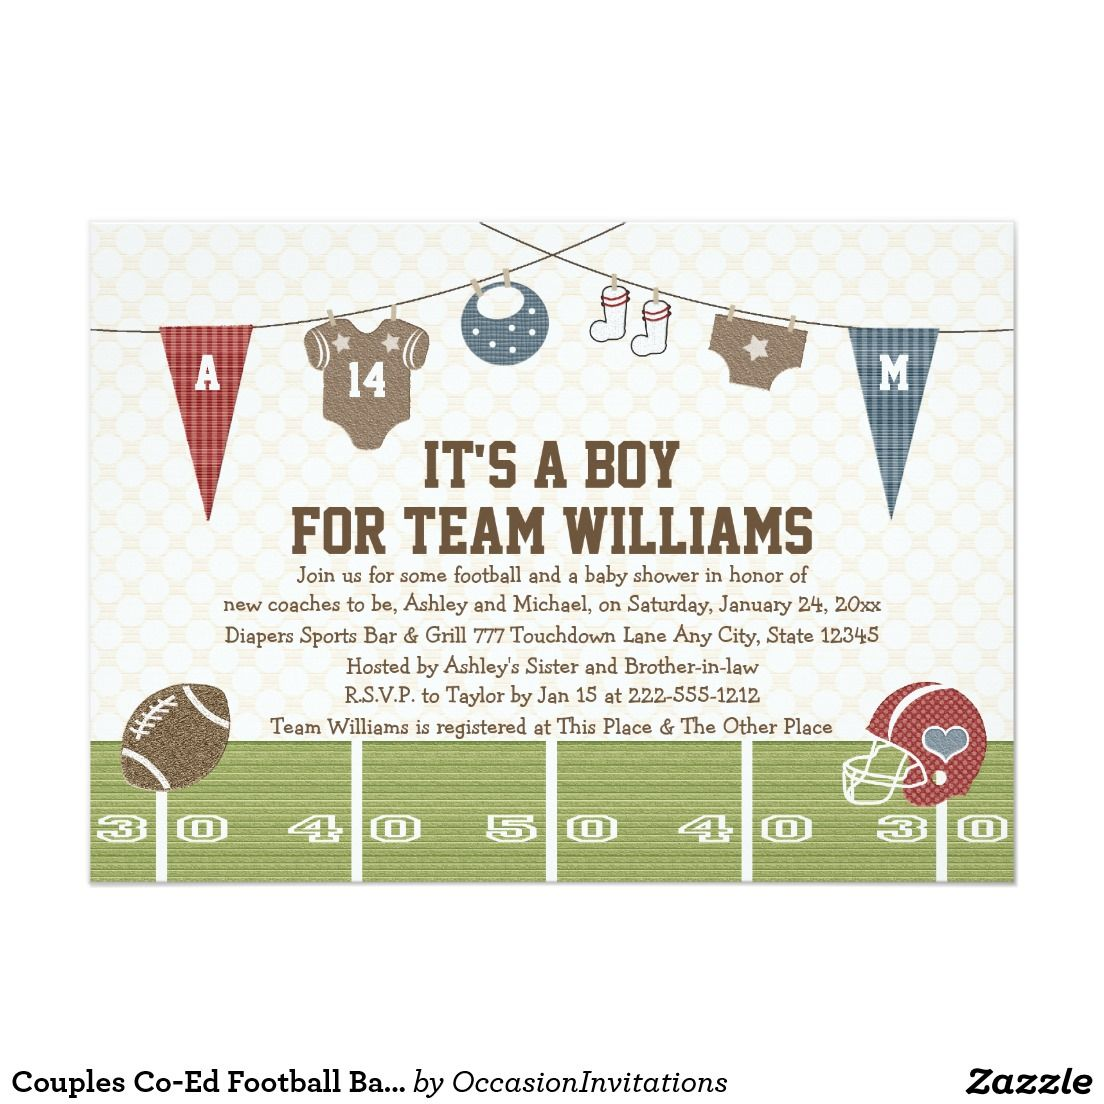 Couples Co-Ed Football Baby Shower Invitations   baby shower ...